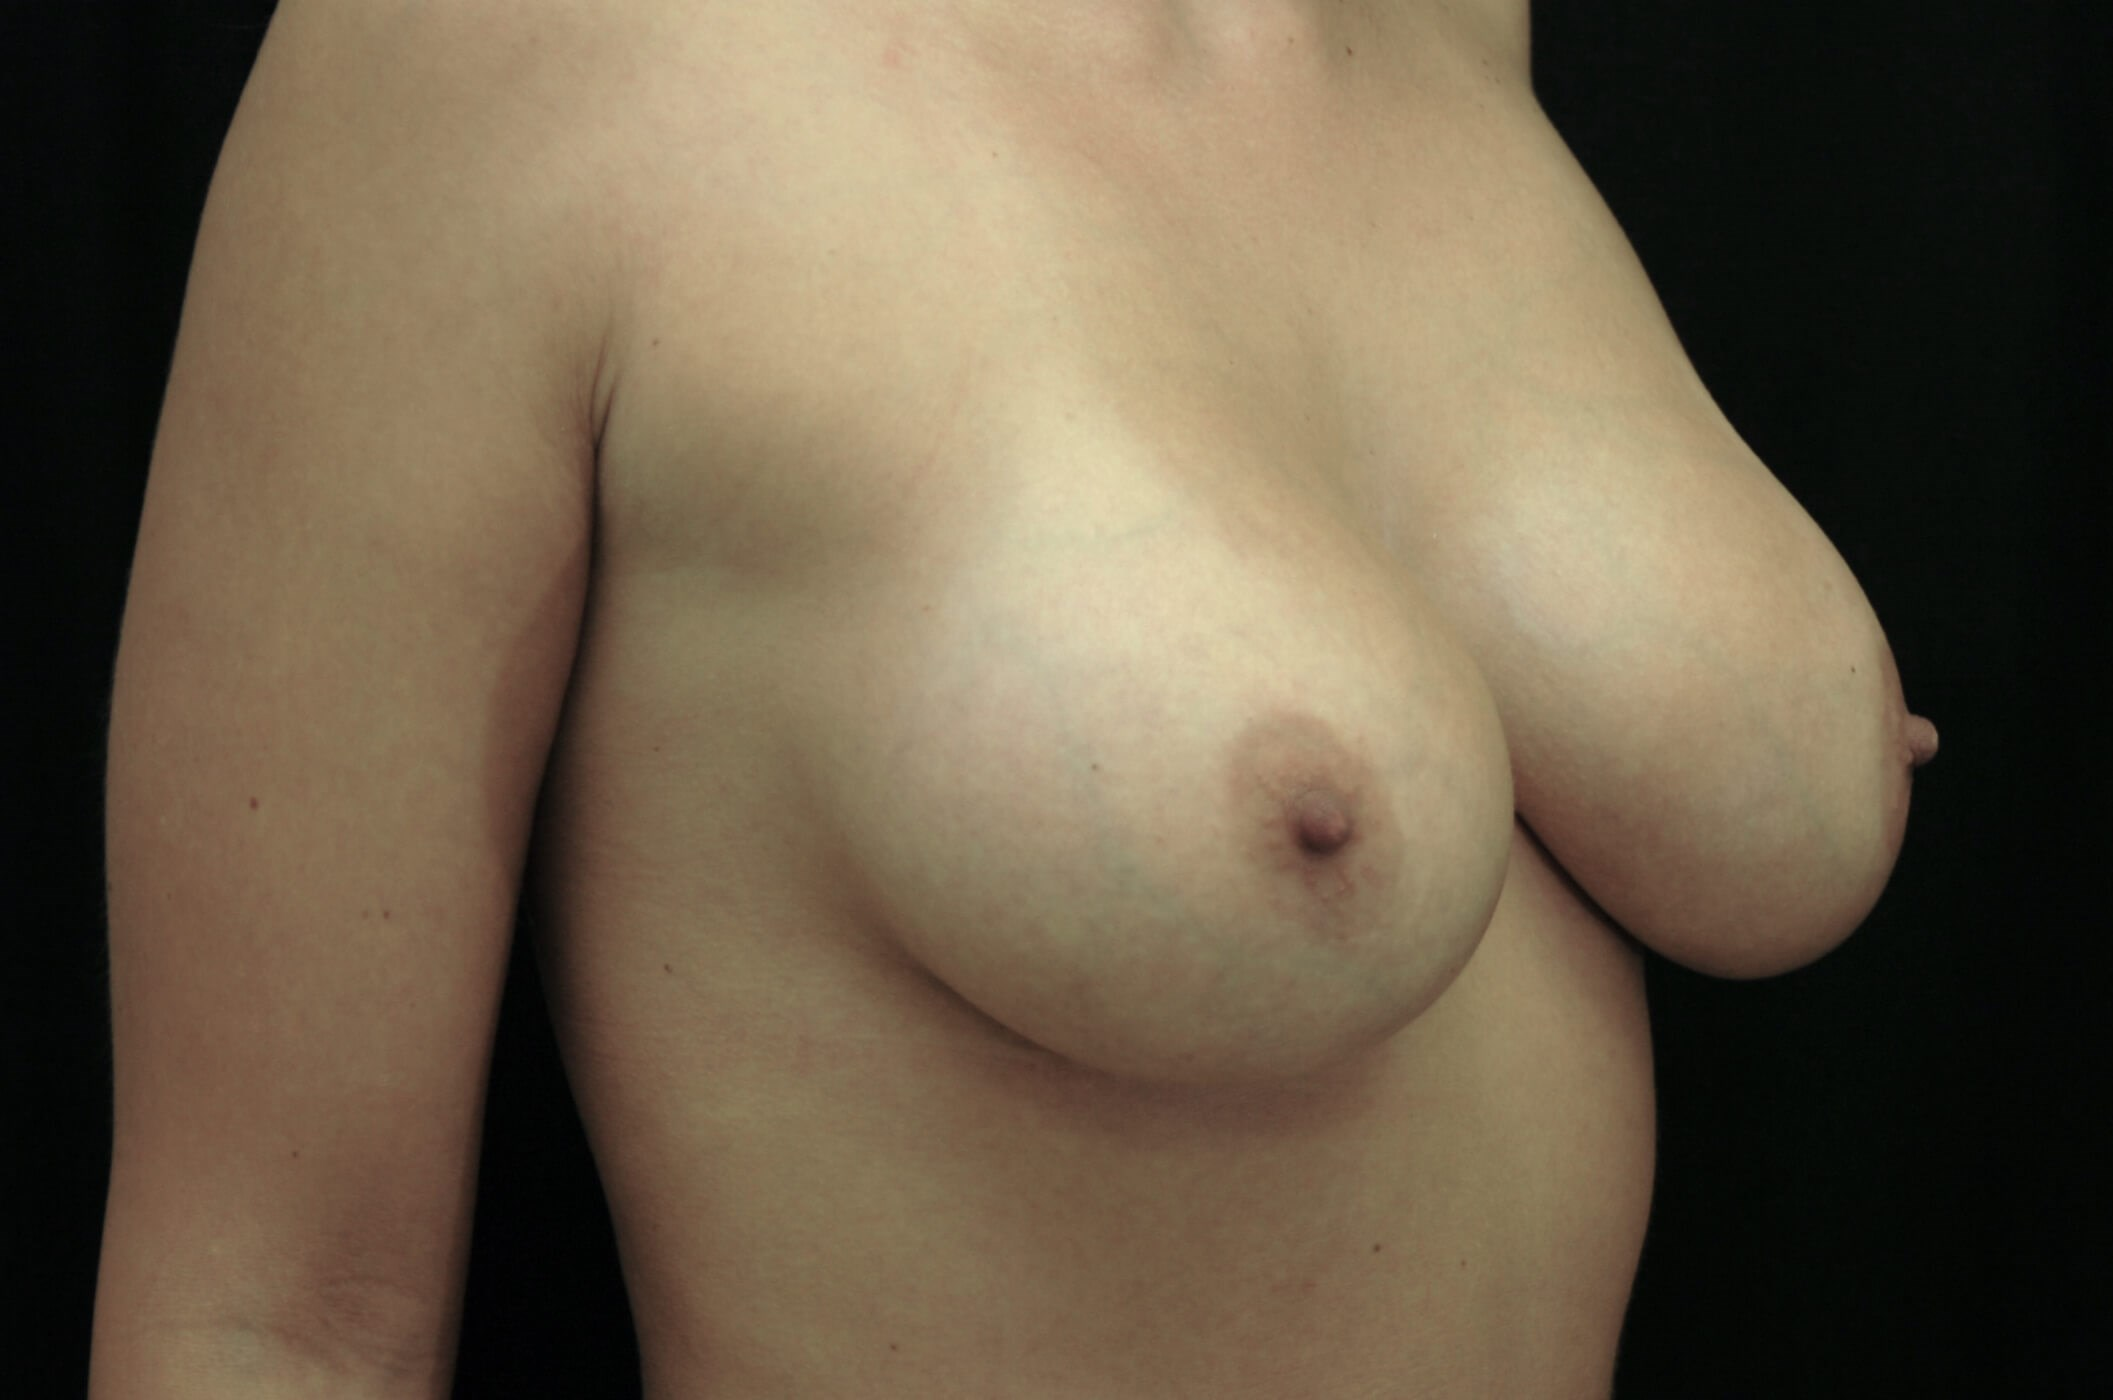 DALLAS, TEXAS WOMAN HAS BREAST AUGMENTATION REVISION & BREAST IMPLANTS REPLACED